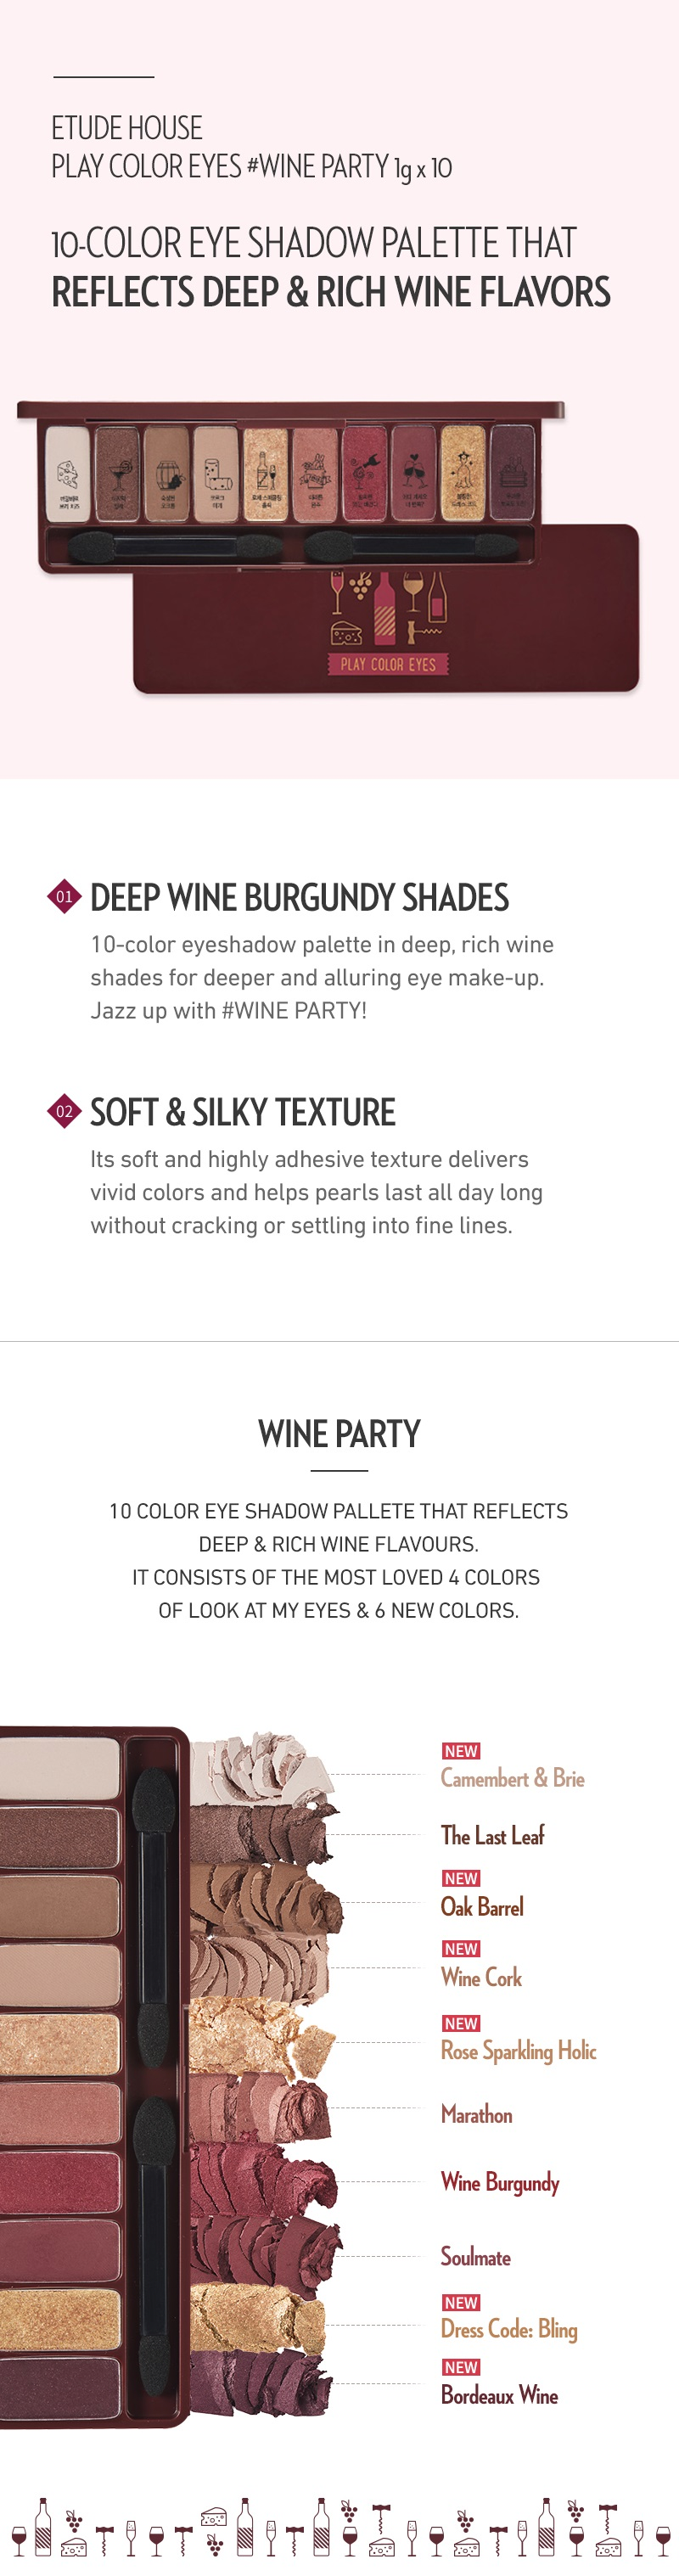 Play Color Eyes - Wine Party by Etude House #16